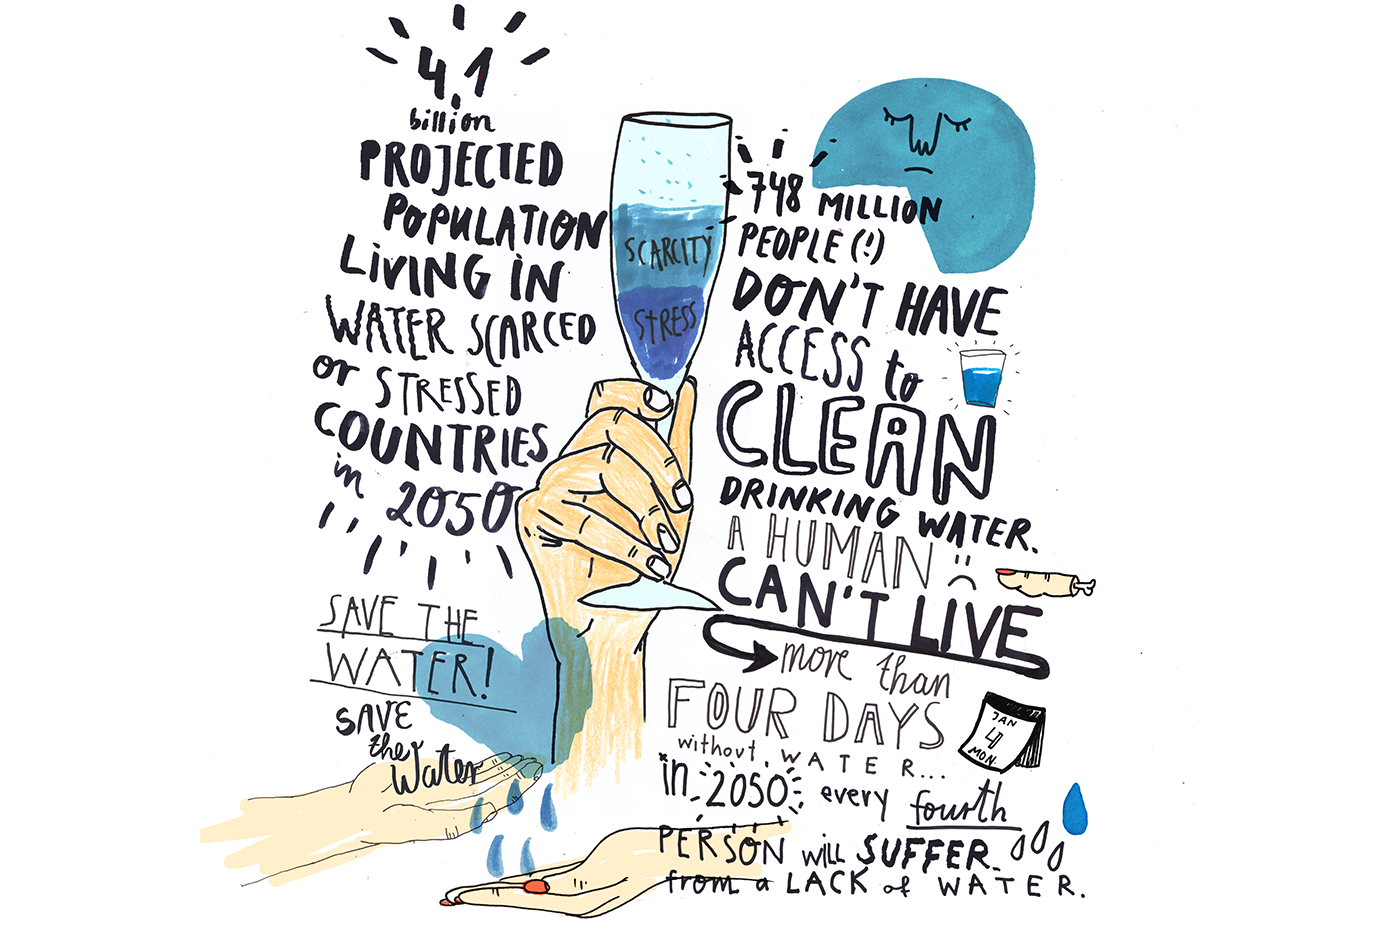 Save the Water (Illustration)